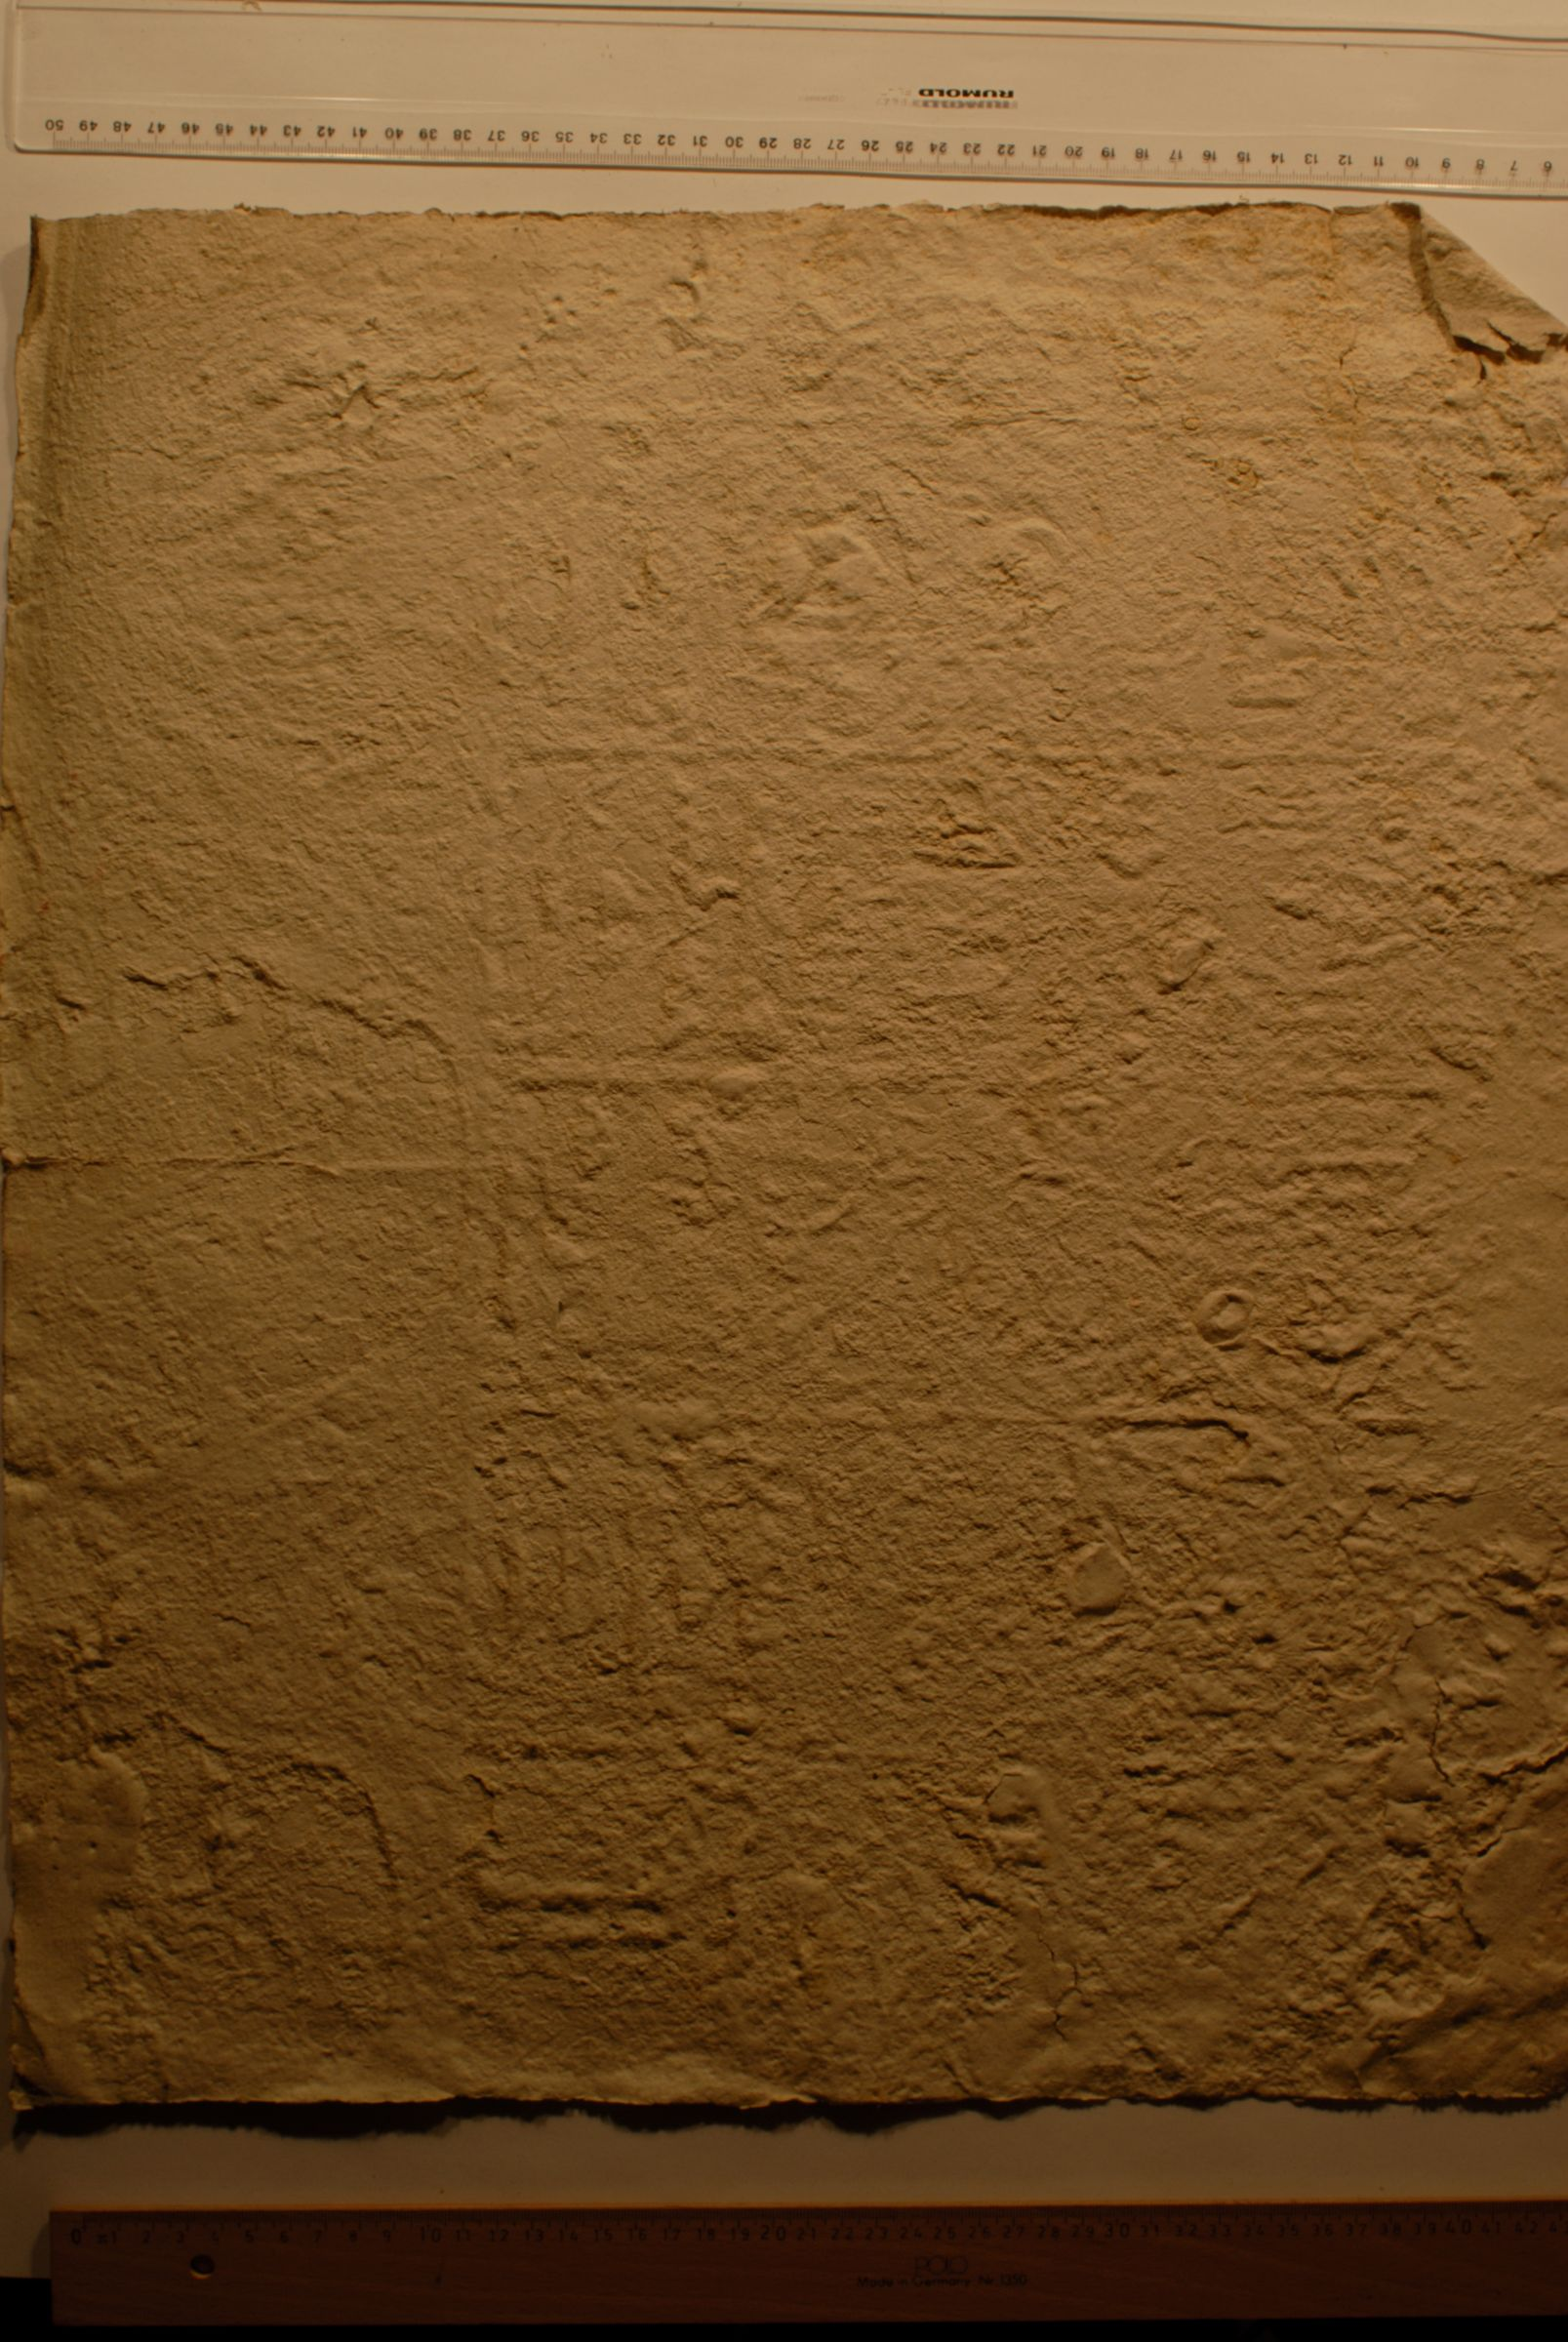 Squeeze: Site: Giza; view: G 8162